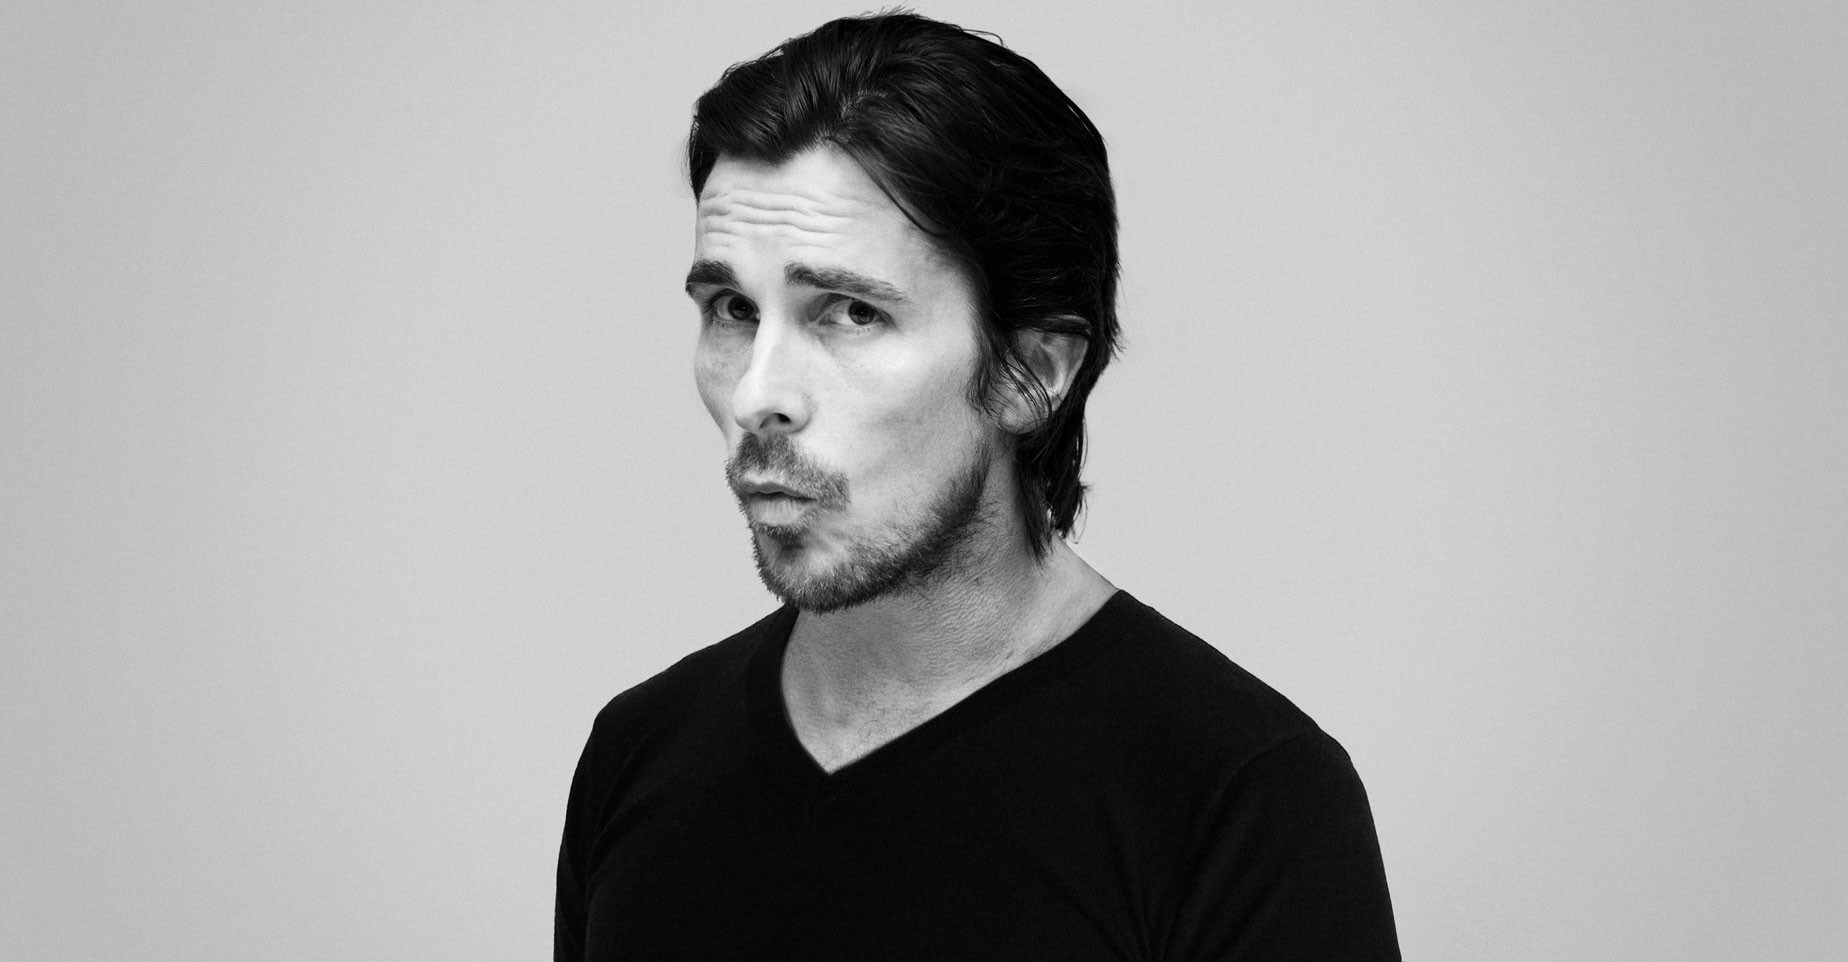 richest celebrity in the world 2020, christianbale